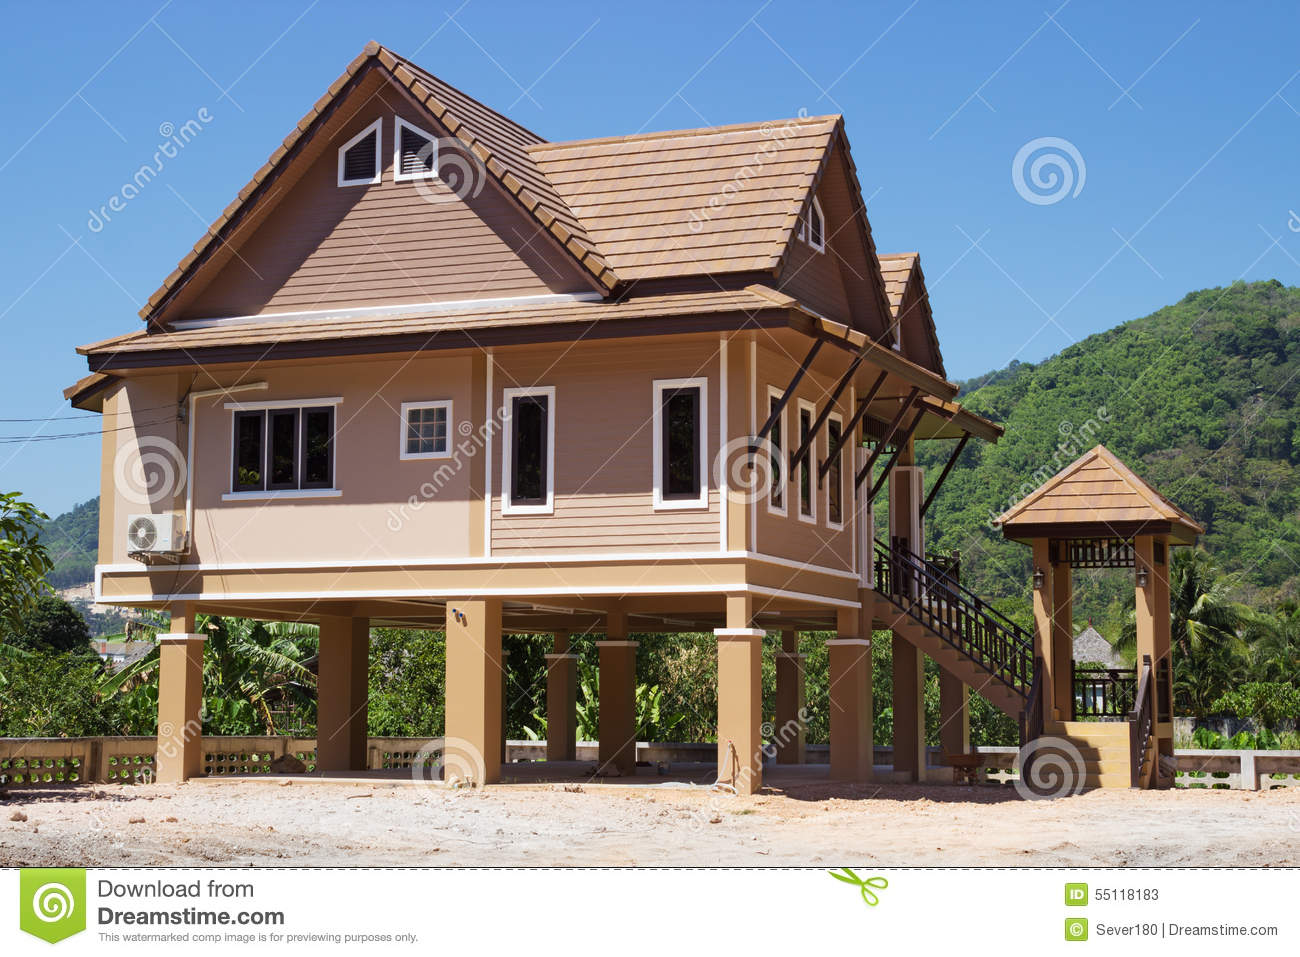 ^ Holiday Houses In hailand ditorial Stock Photo - Image: 55118183